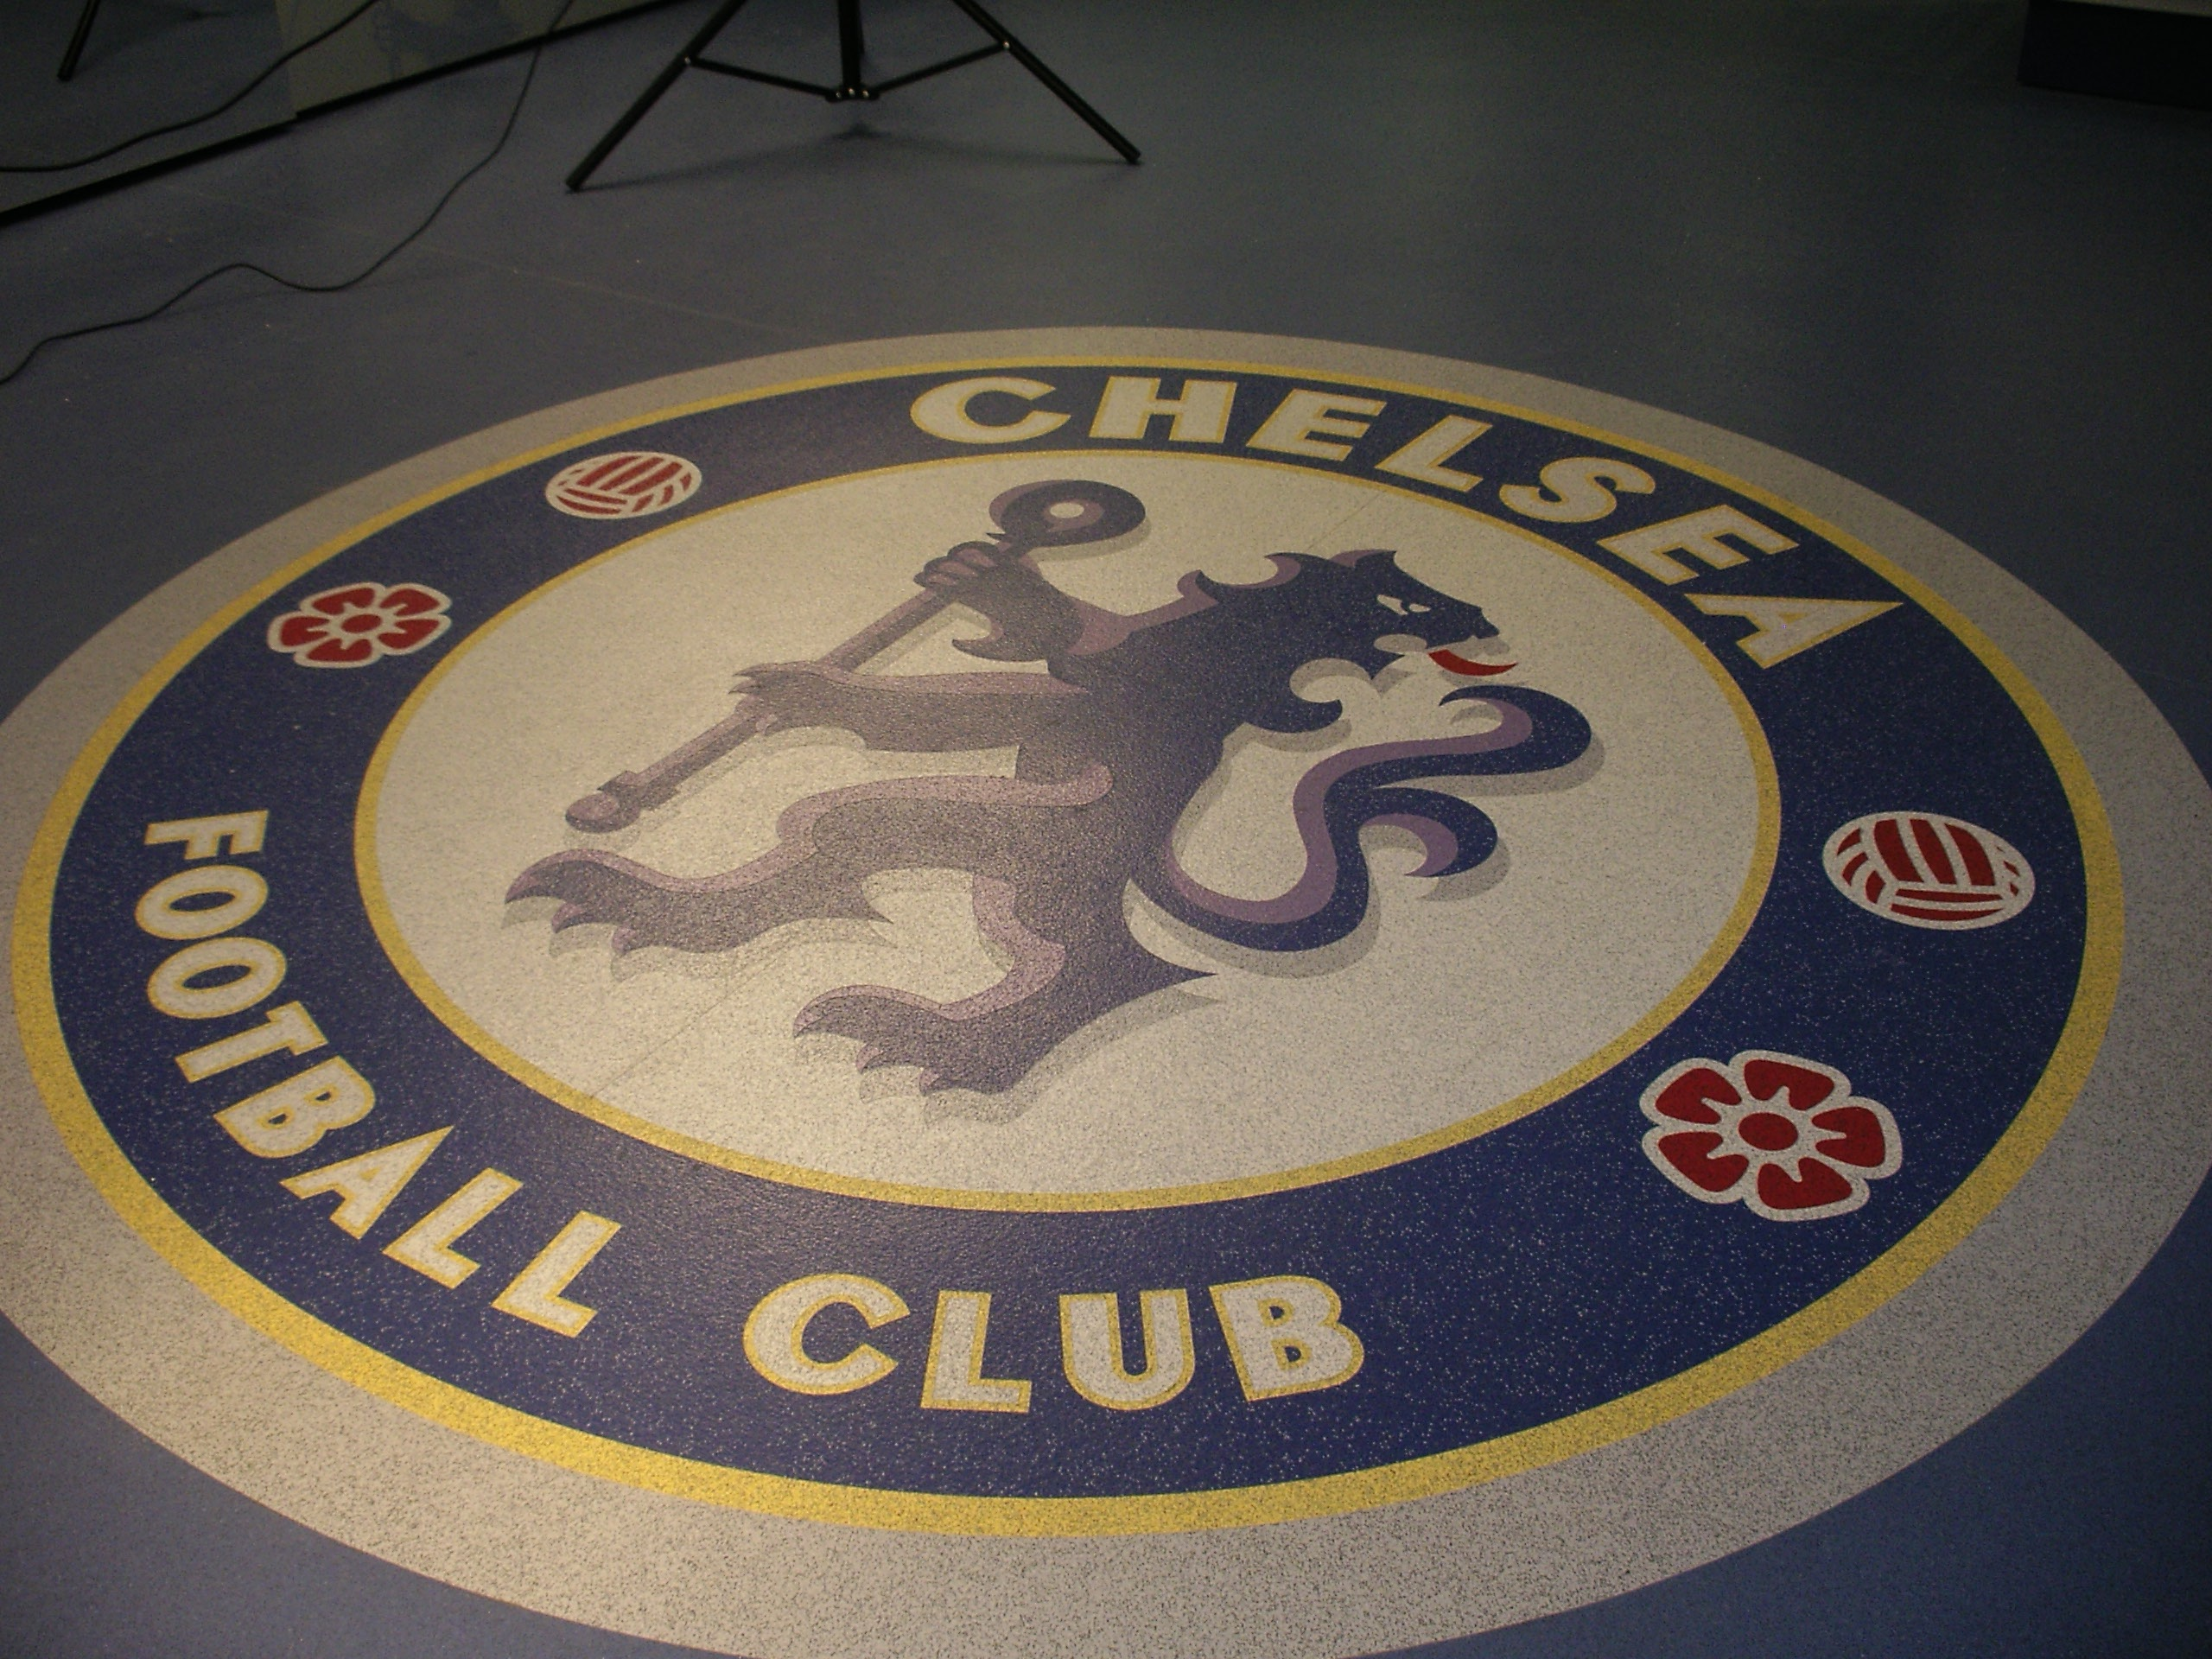 Chelsea crest created using various shades of Polysafe Standard